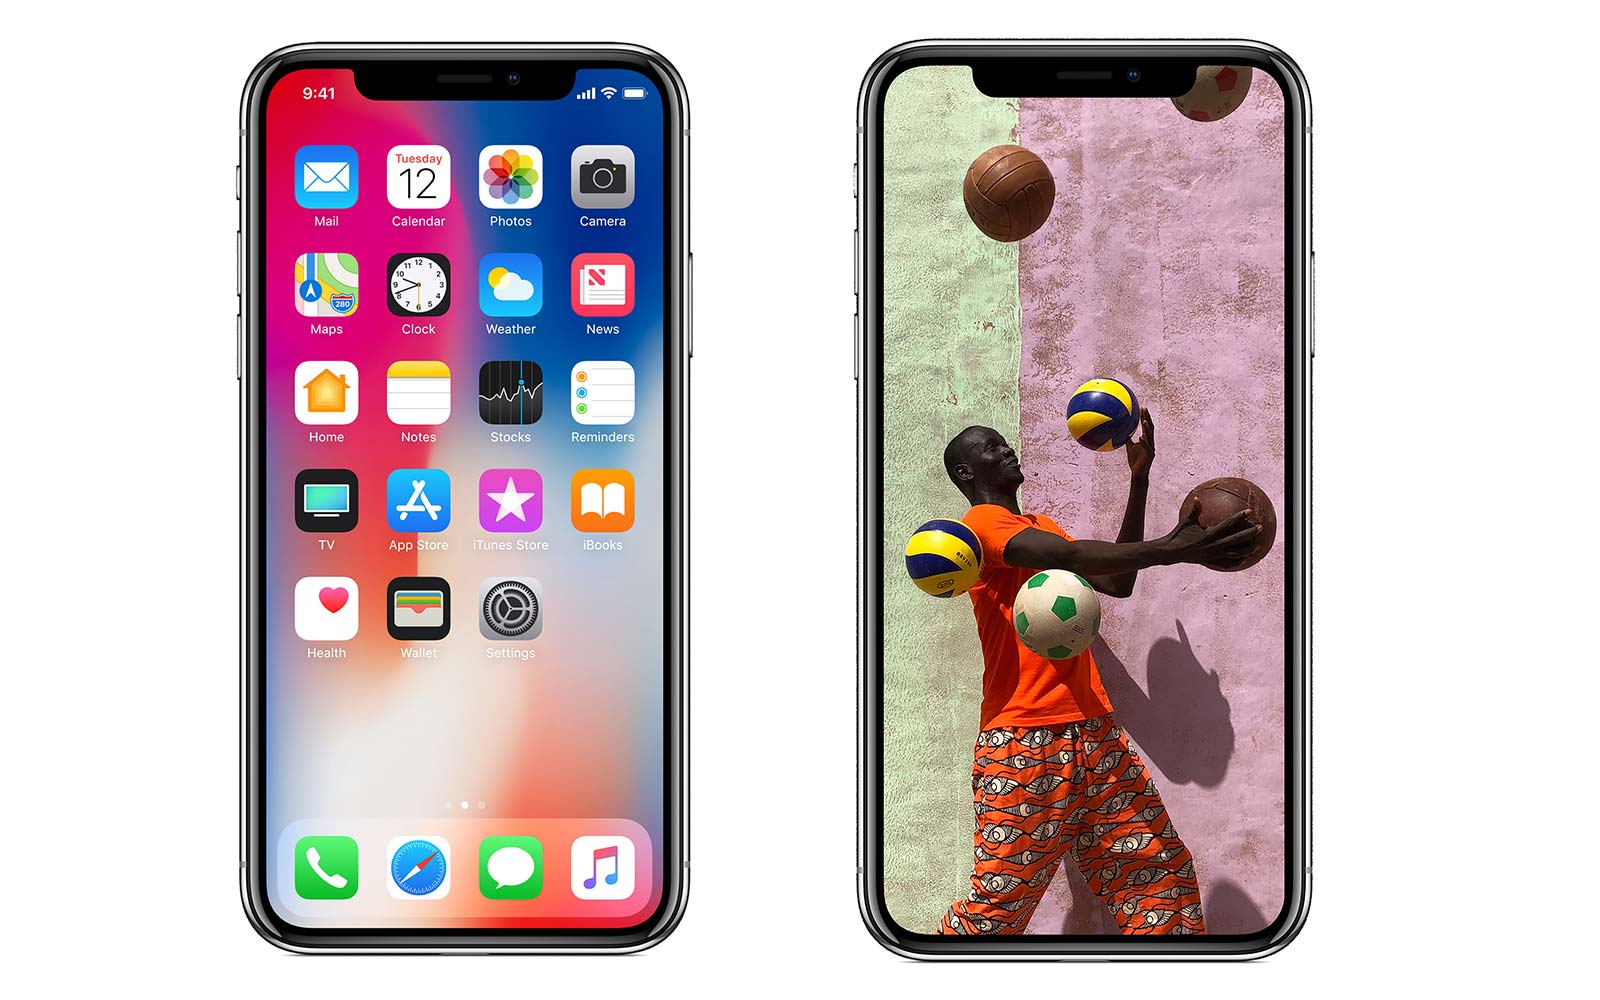 The New iPhone X Costs $999 and Features an Edge-to-Edge Screen